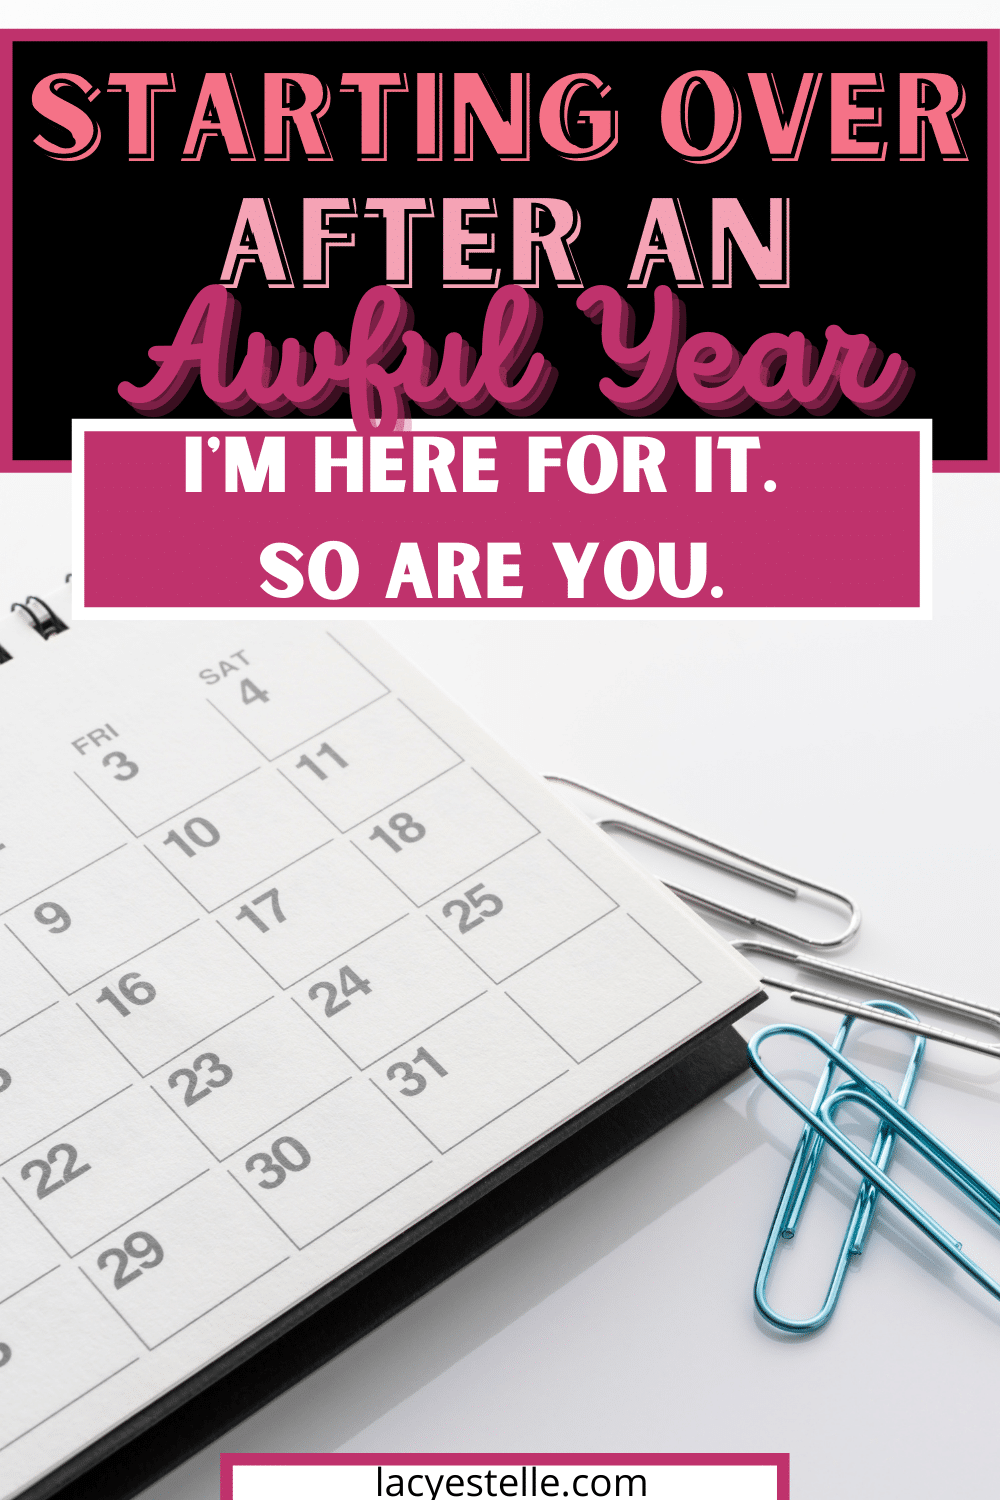 Starting a new year and trying to make it better. How to start again after a terrible year.